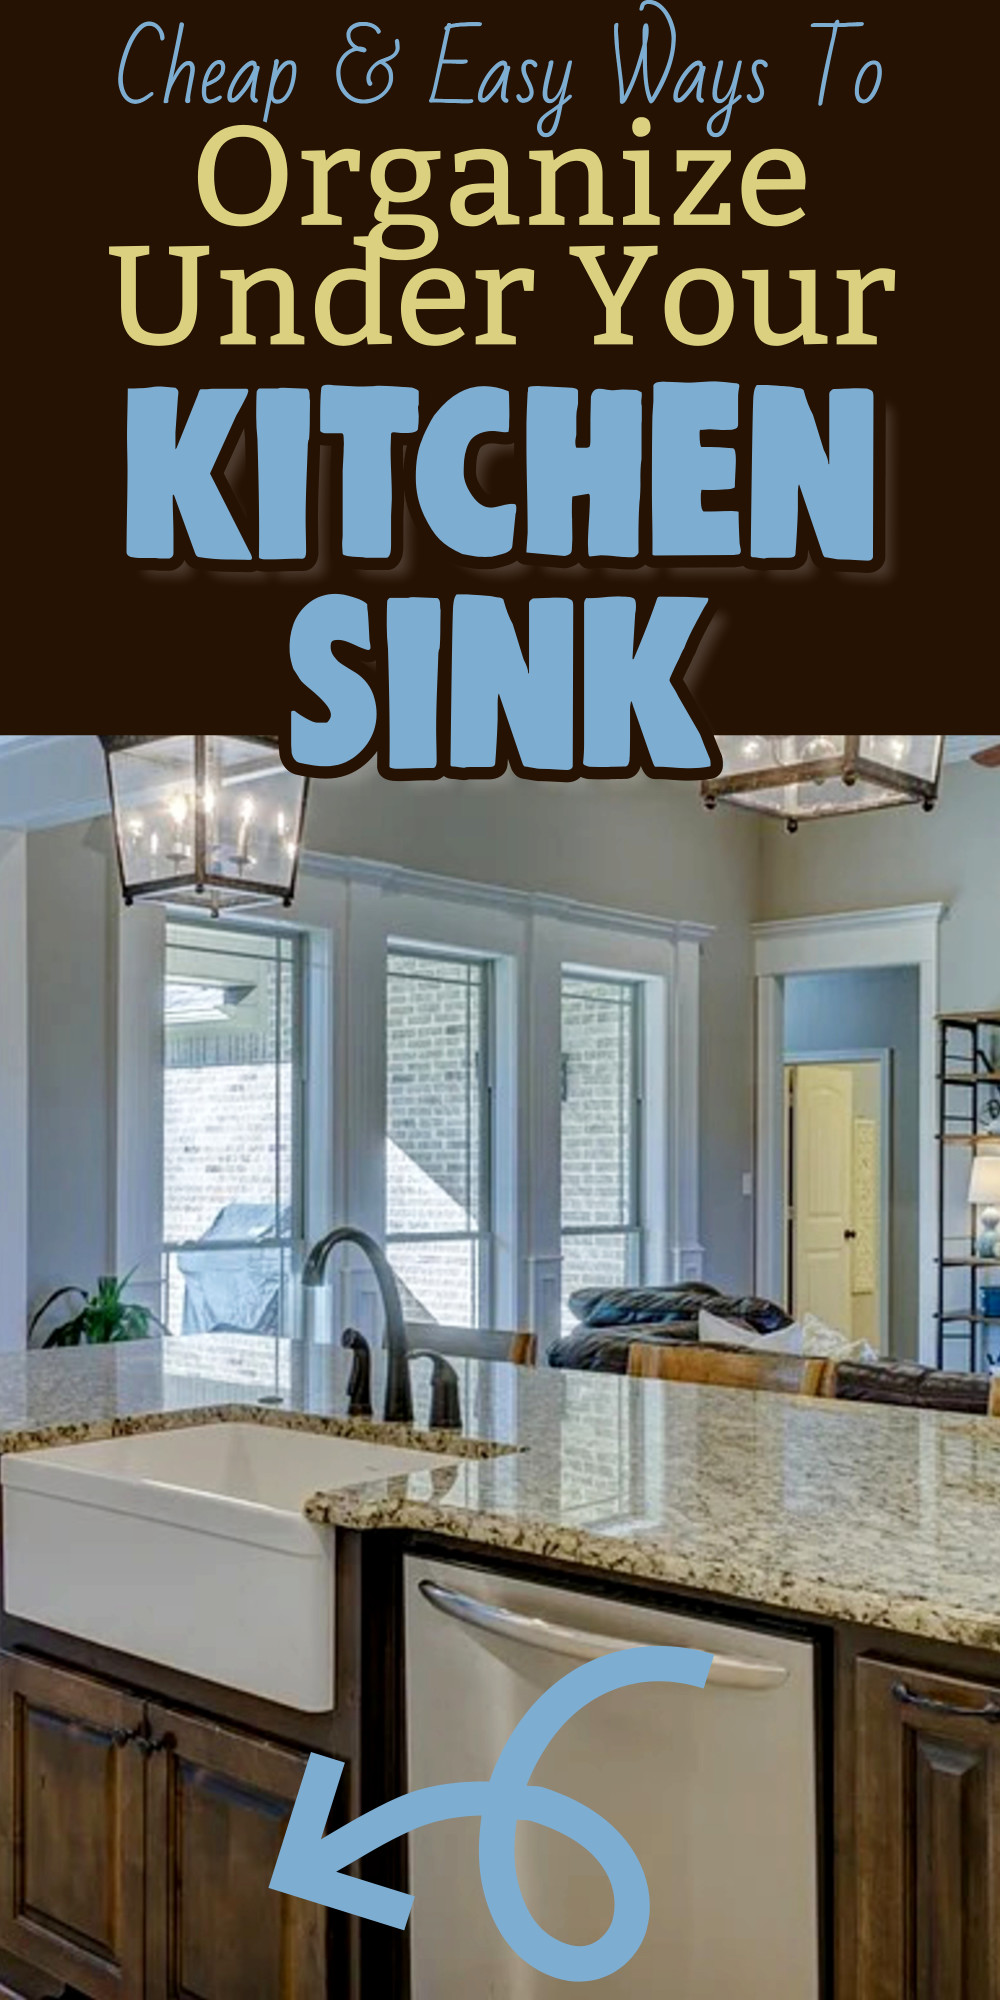 Cabinet Organization Ideas Clever Ways To Organize Under Your Kitchen Sink Even If You Re On A Budget